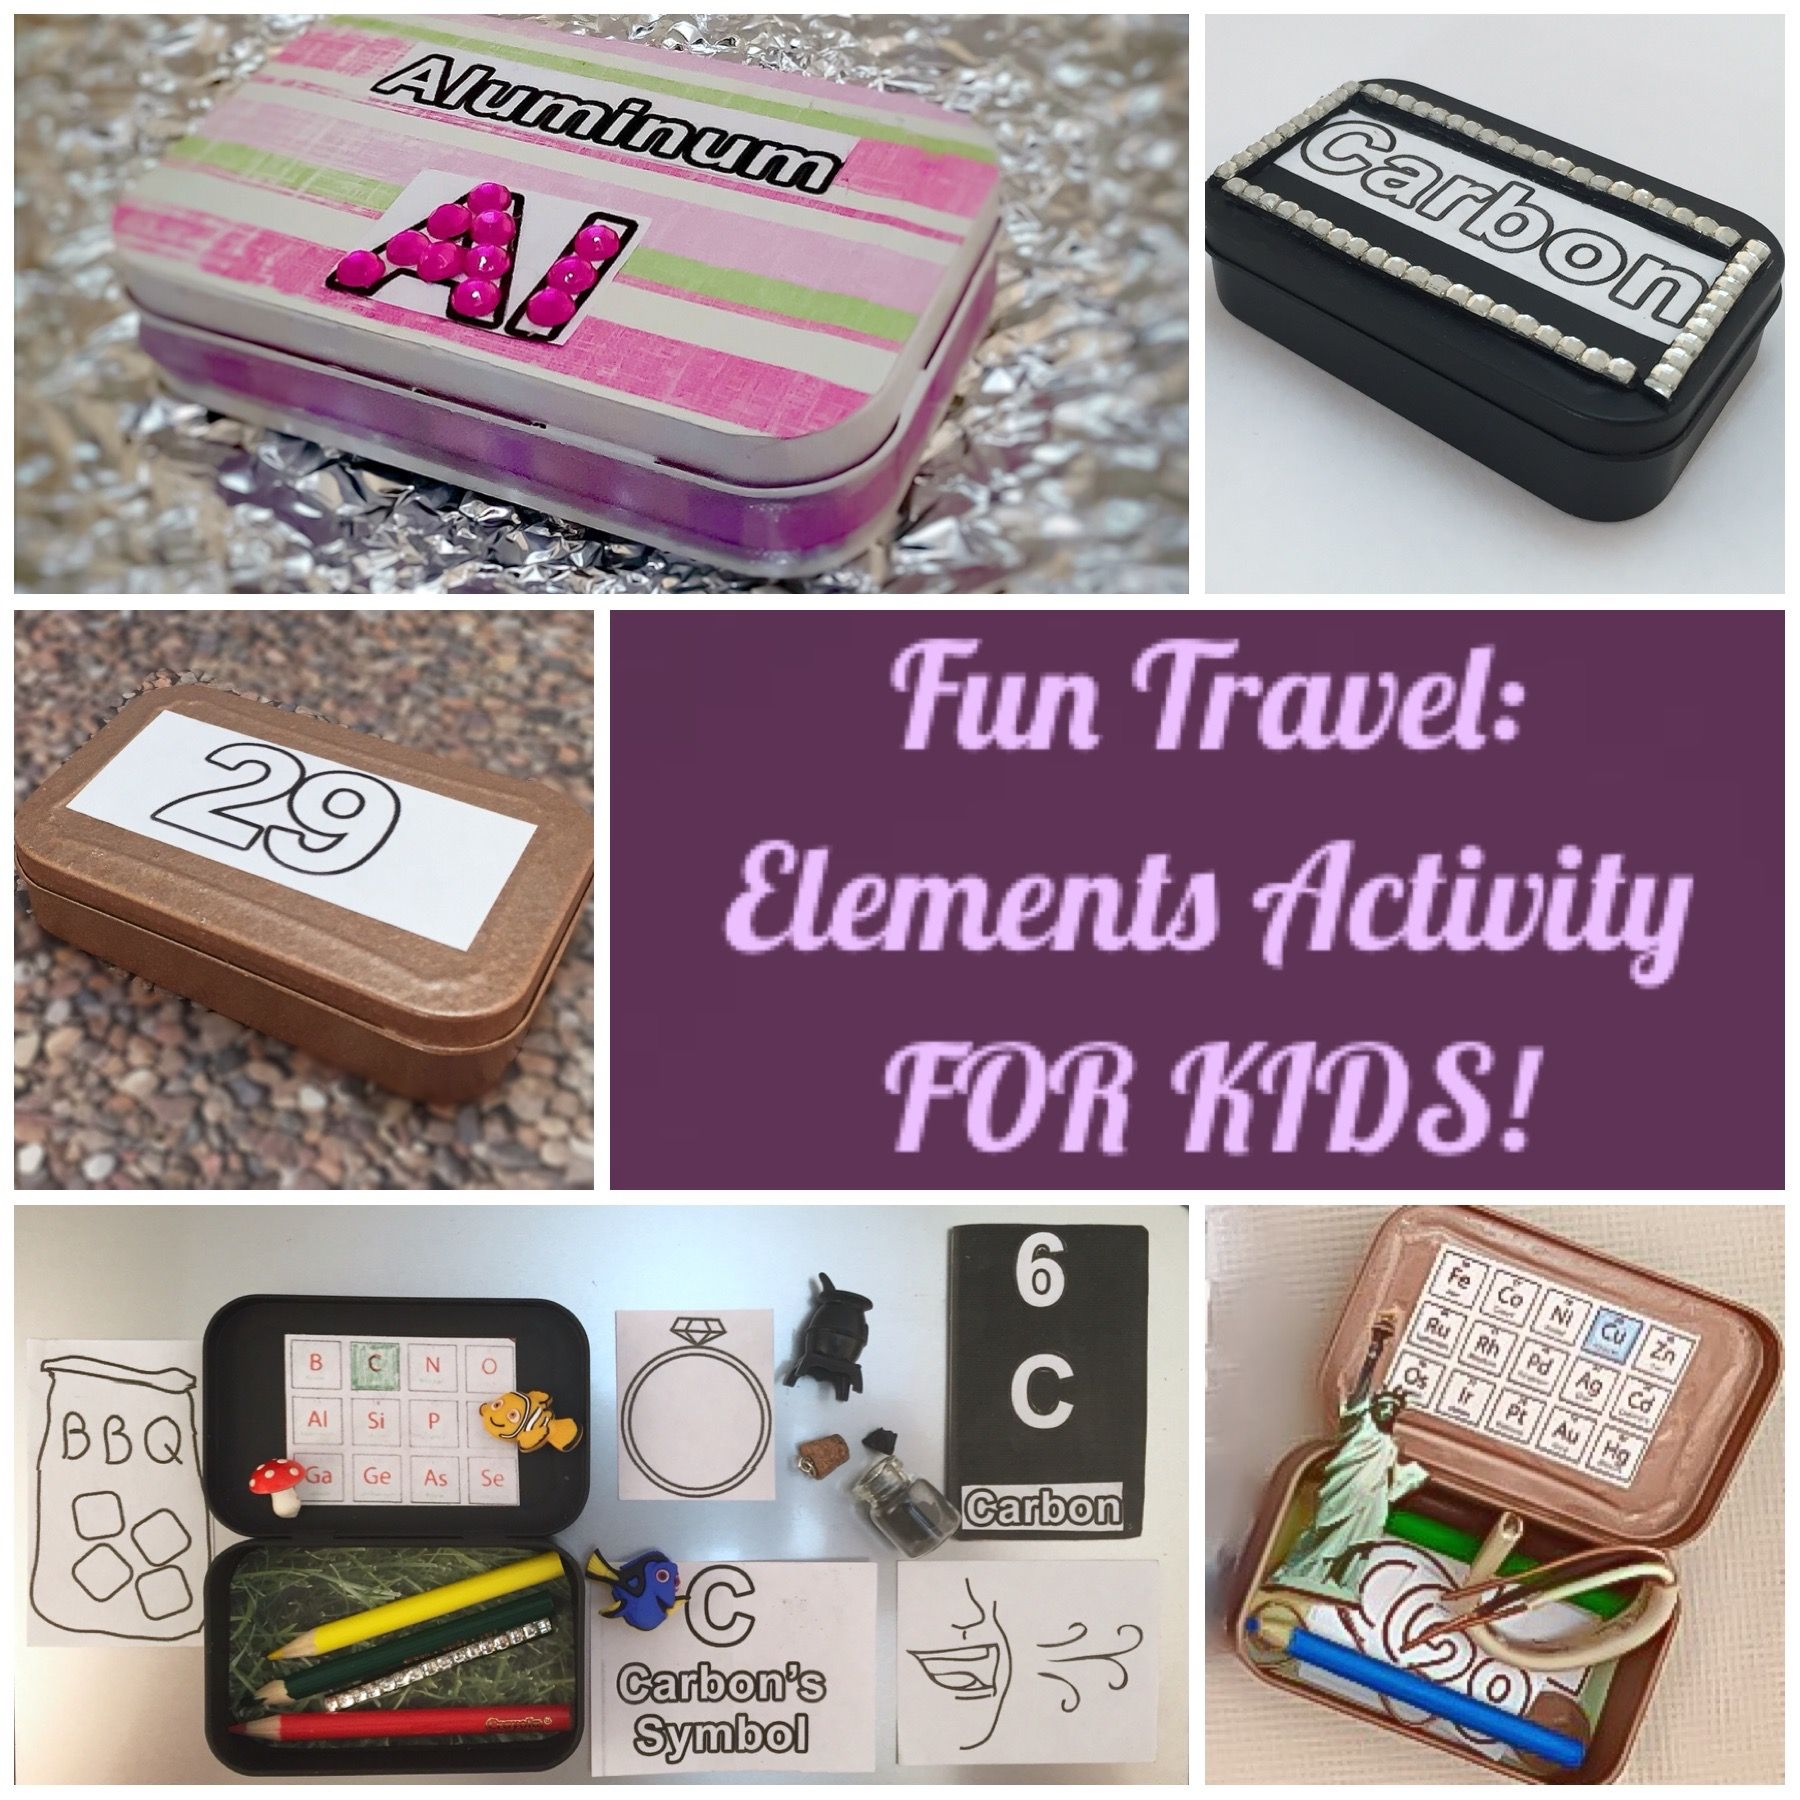 Travel periodic table elements activity for kids using altoid tins travel periodic table elements activity for kids using altoid tins gamestrikefo Image collections